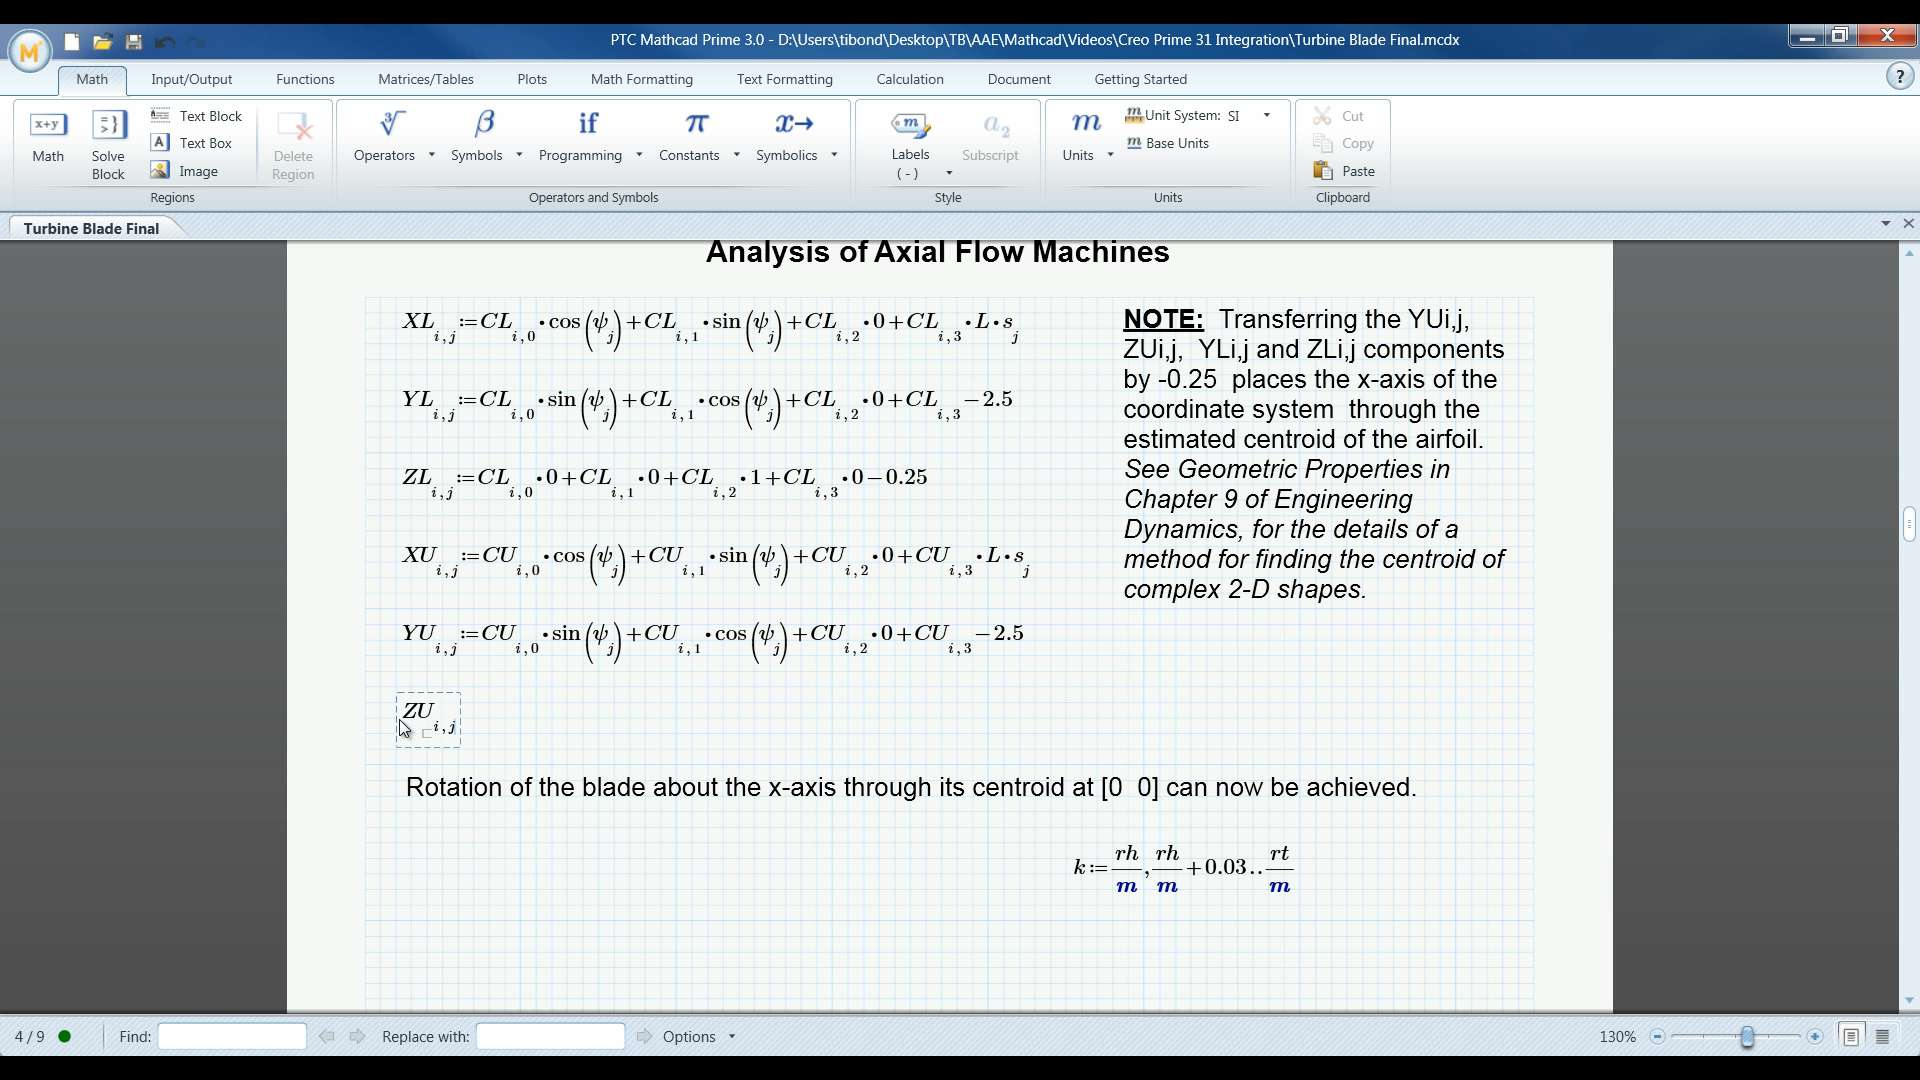 PTC Mathcad: For the CAD Engineer